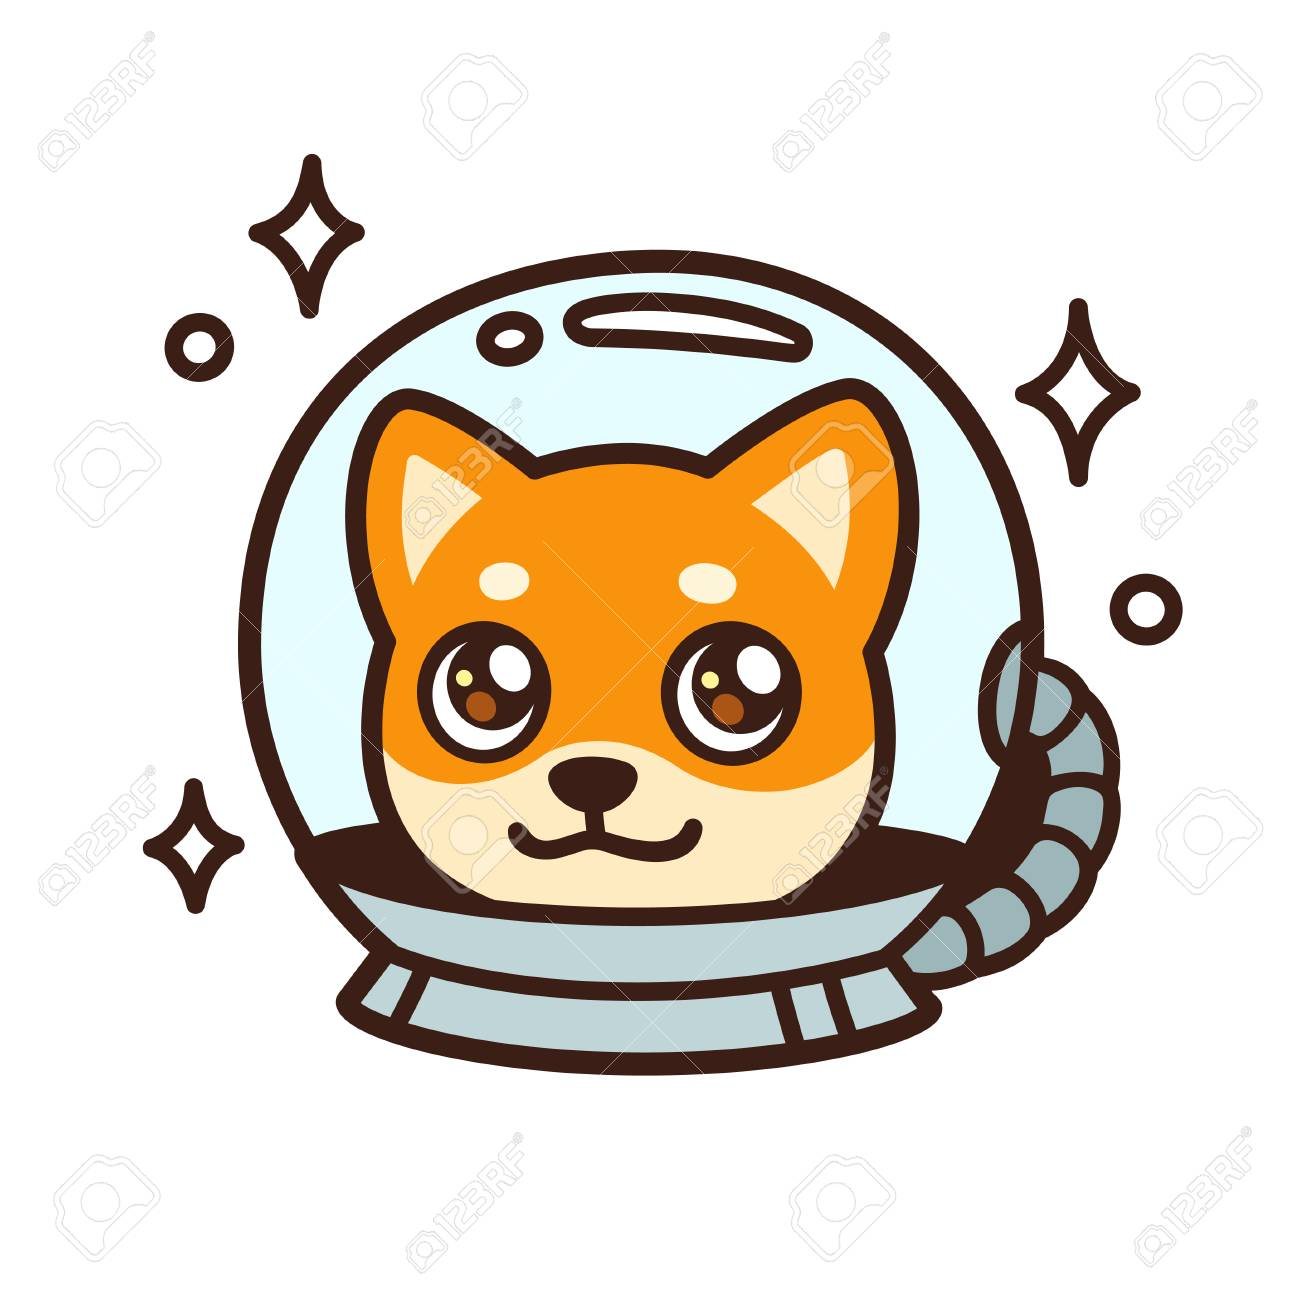 Cute Cartoon Space Dog Character Drawing Kawaii Anime Style Royalty Free Cliparts Vectors And Stock Illustration Image 111468529